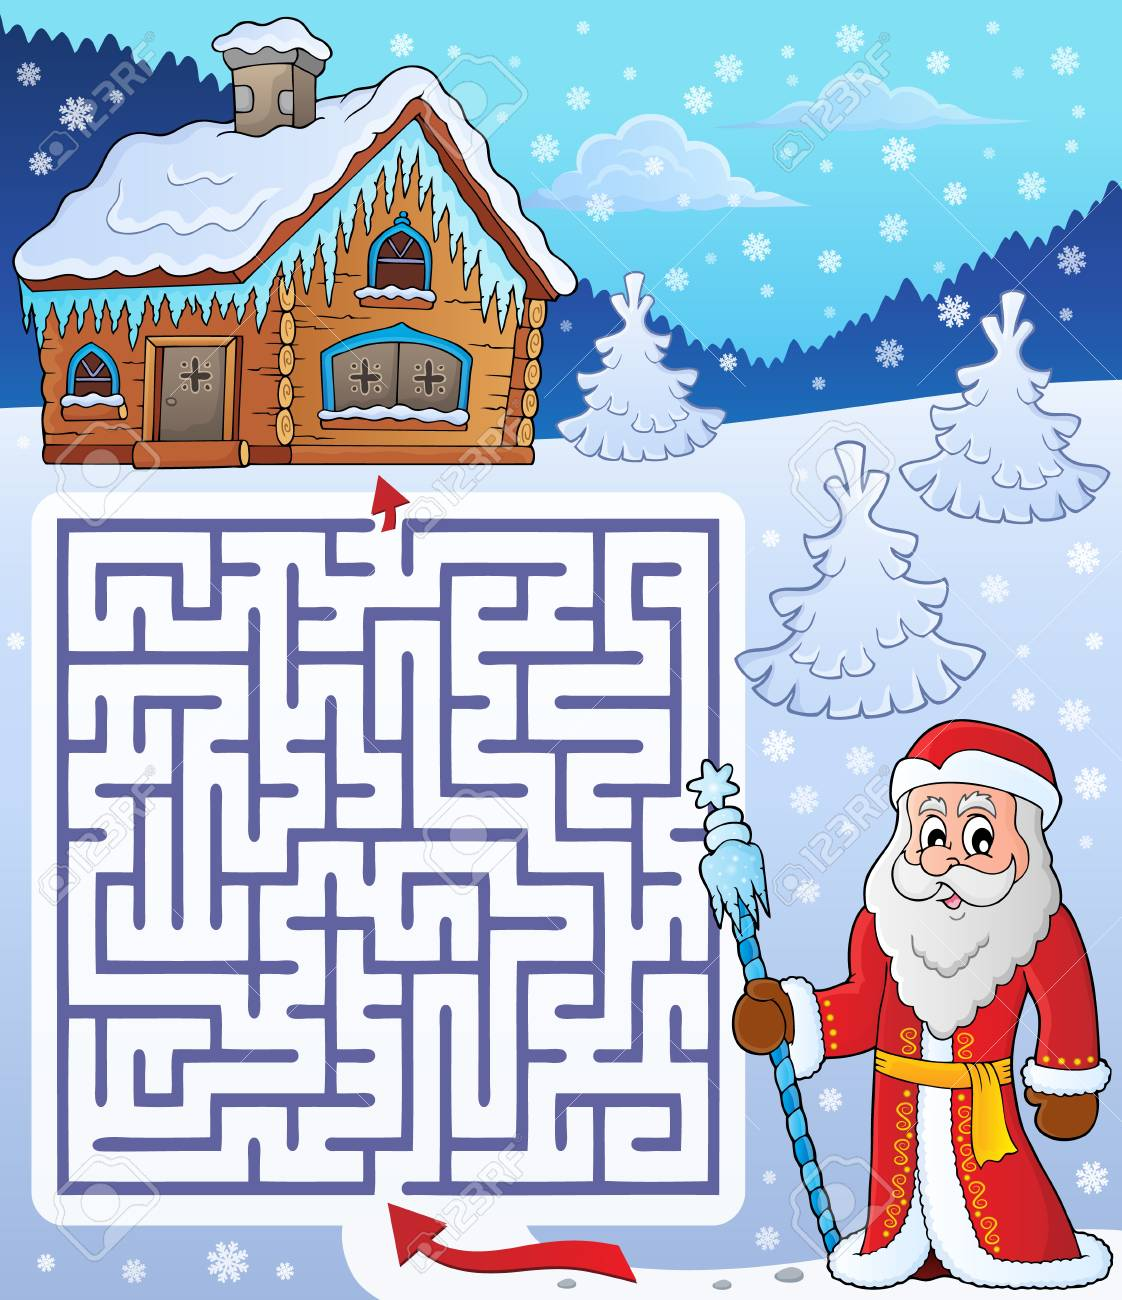 father frost theme santa claus design maze activity for kids stock vector 88710140 - Santa Claus For Kids